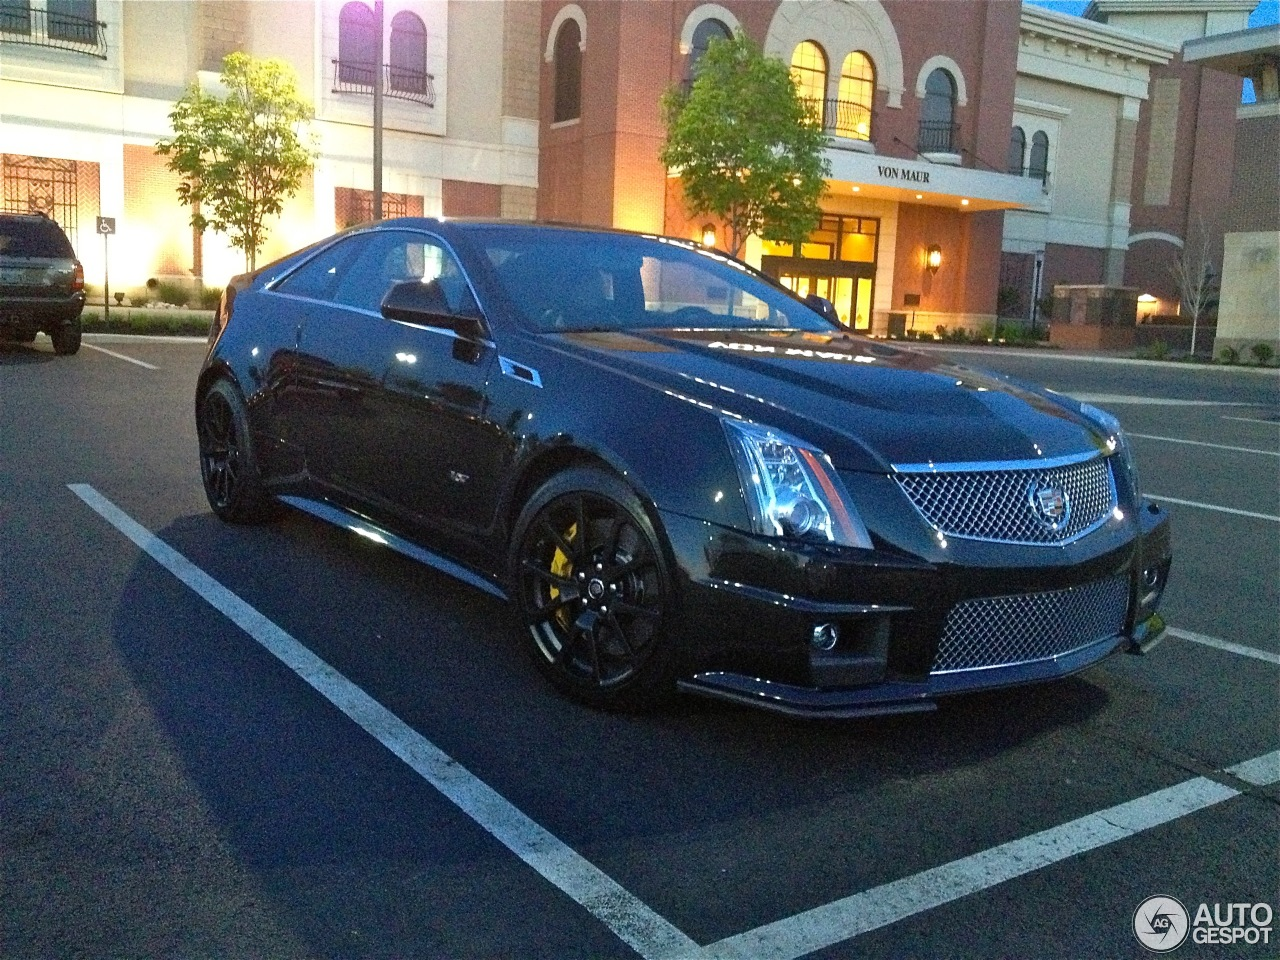 coupe copyright cargurus quarter cts exterior front cars motors cadillac manufacturer overview pic view general